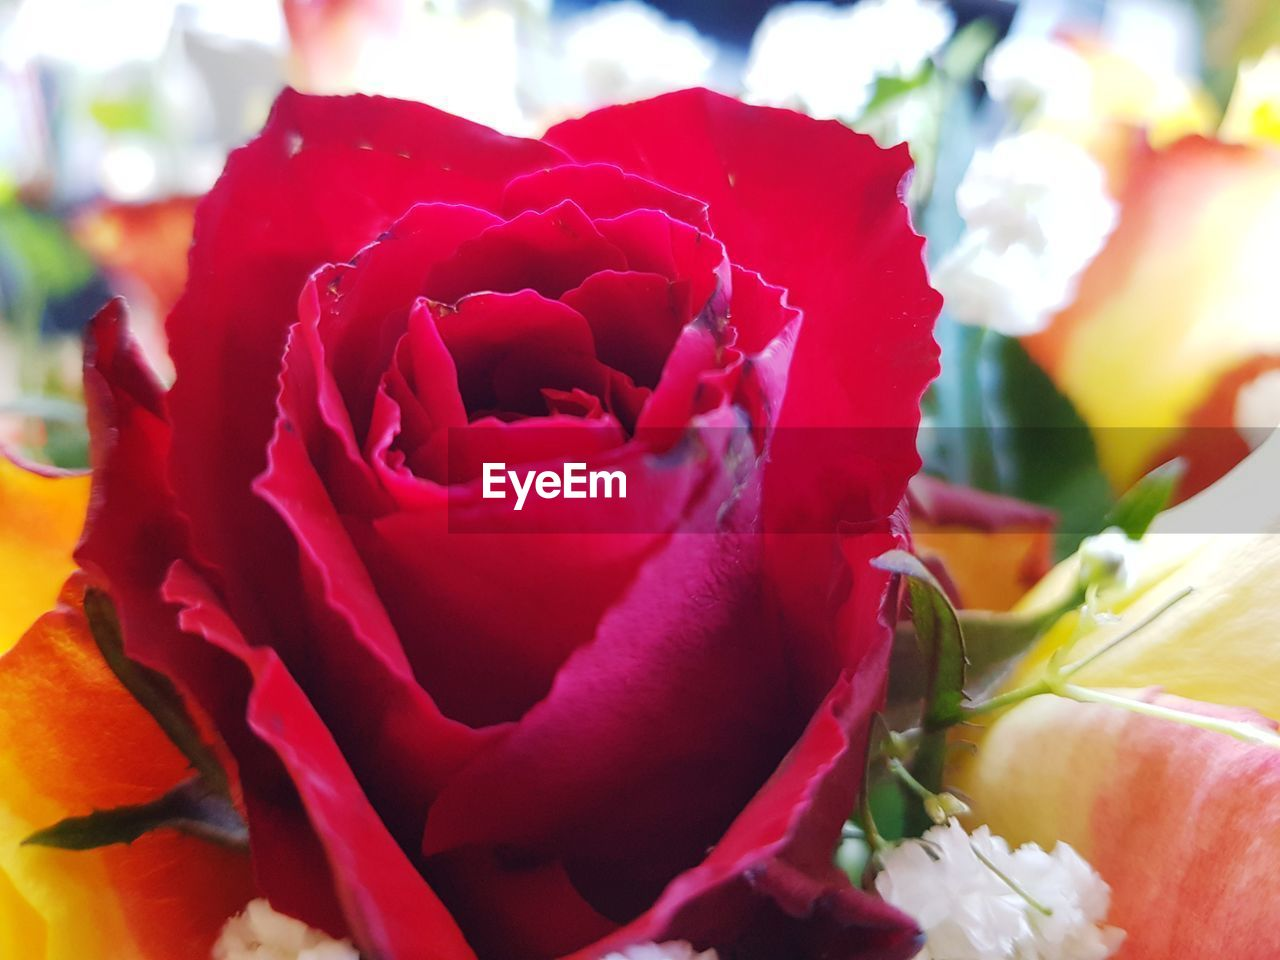 flowering plant, flower, freshness, petal, beauty in nature, fragility, plant, close-up, flower head, vulnerability, inflorescence, rose, rose - flower, red, nature, focus on foreground, no people, growth, day, outdoors, flower arrangement, bouquet